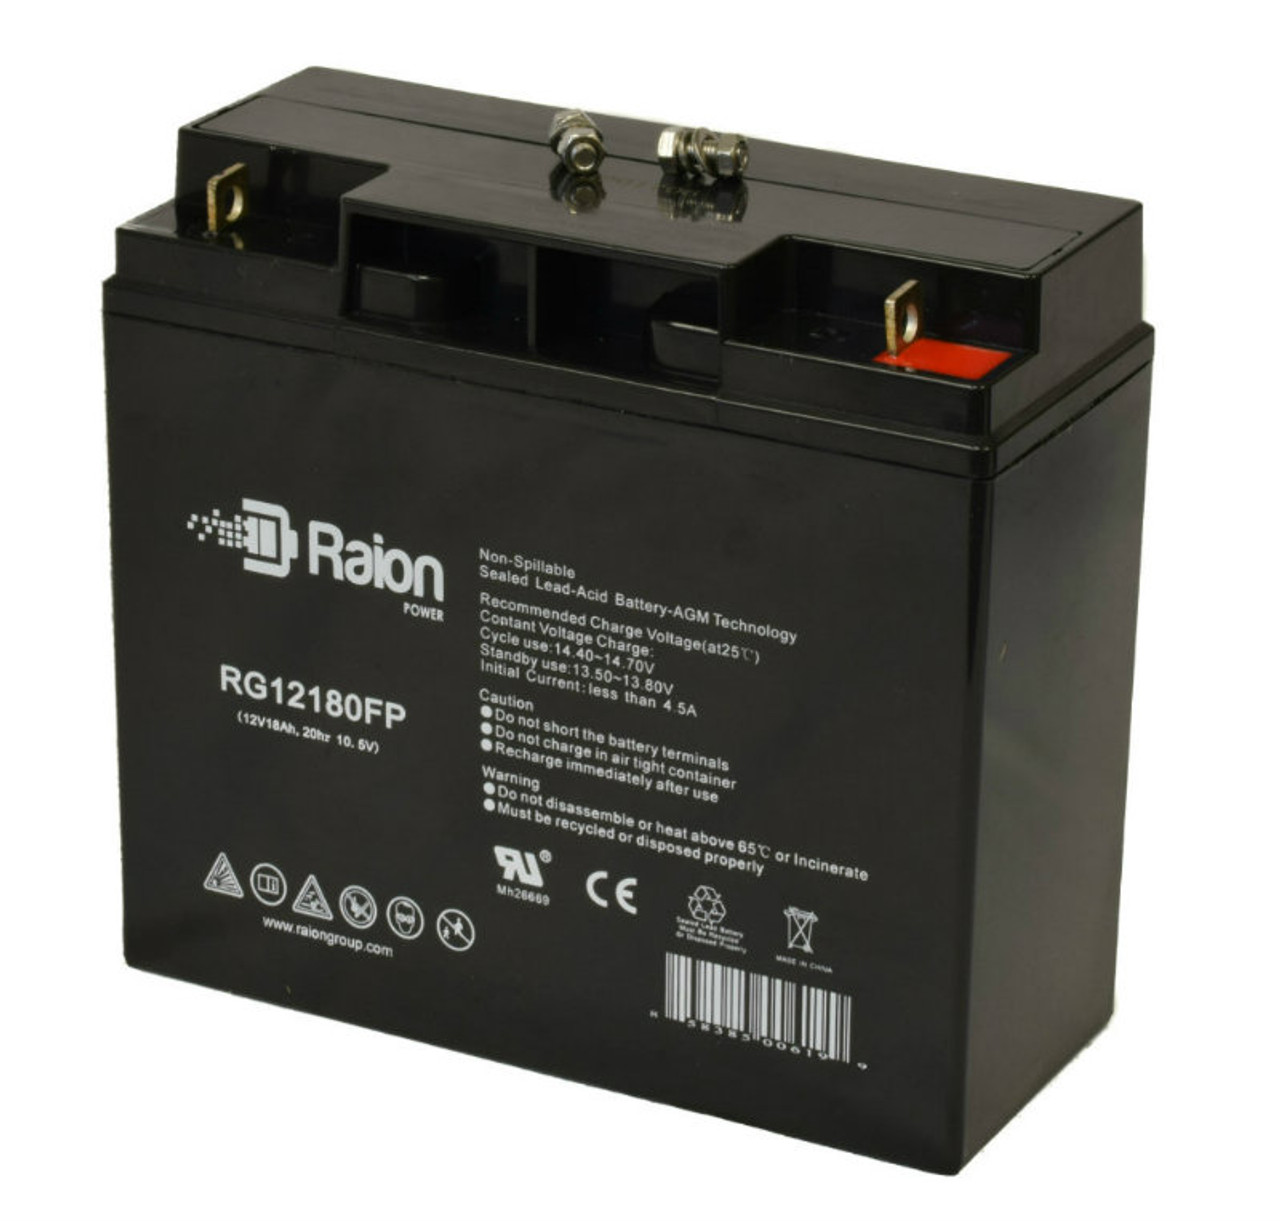 Raion Power RG12180FP Replacement Battery For Amigo RT Express (1 Pack)